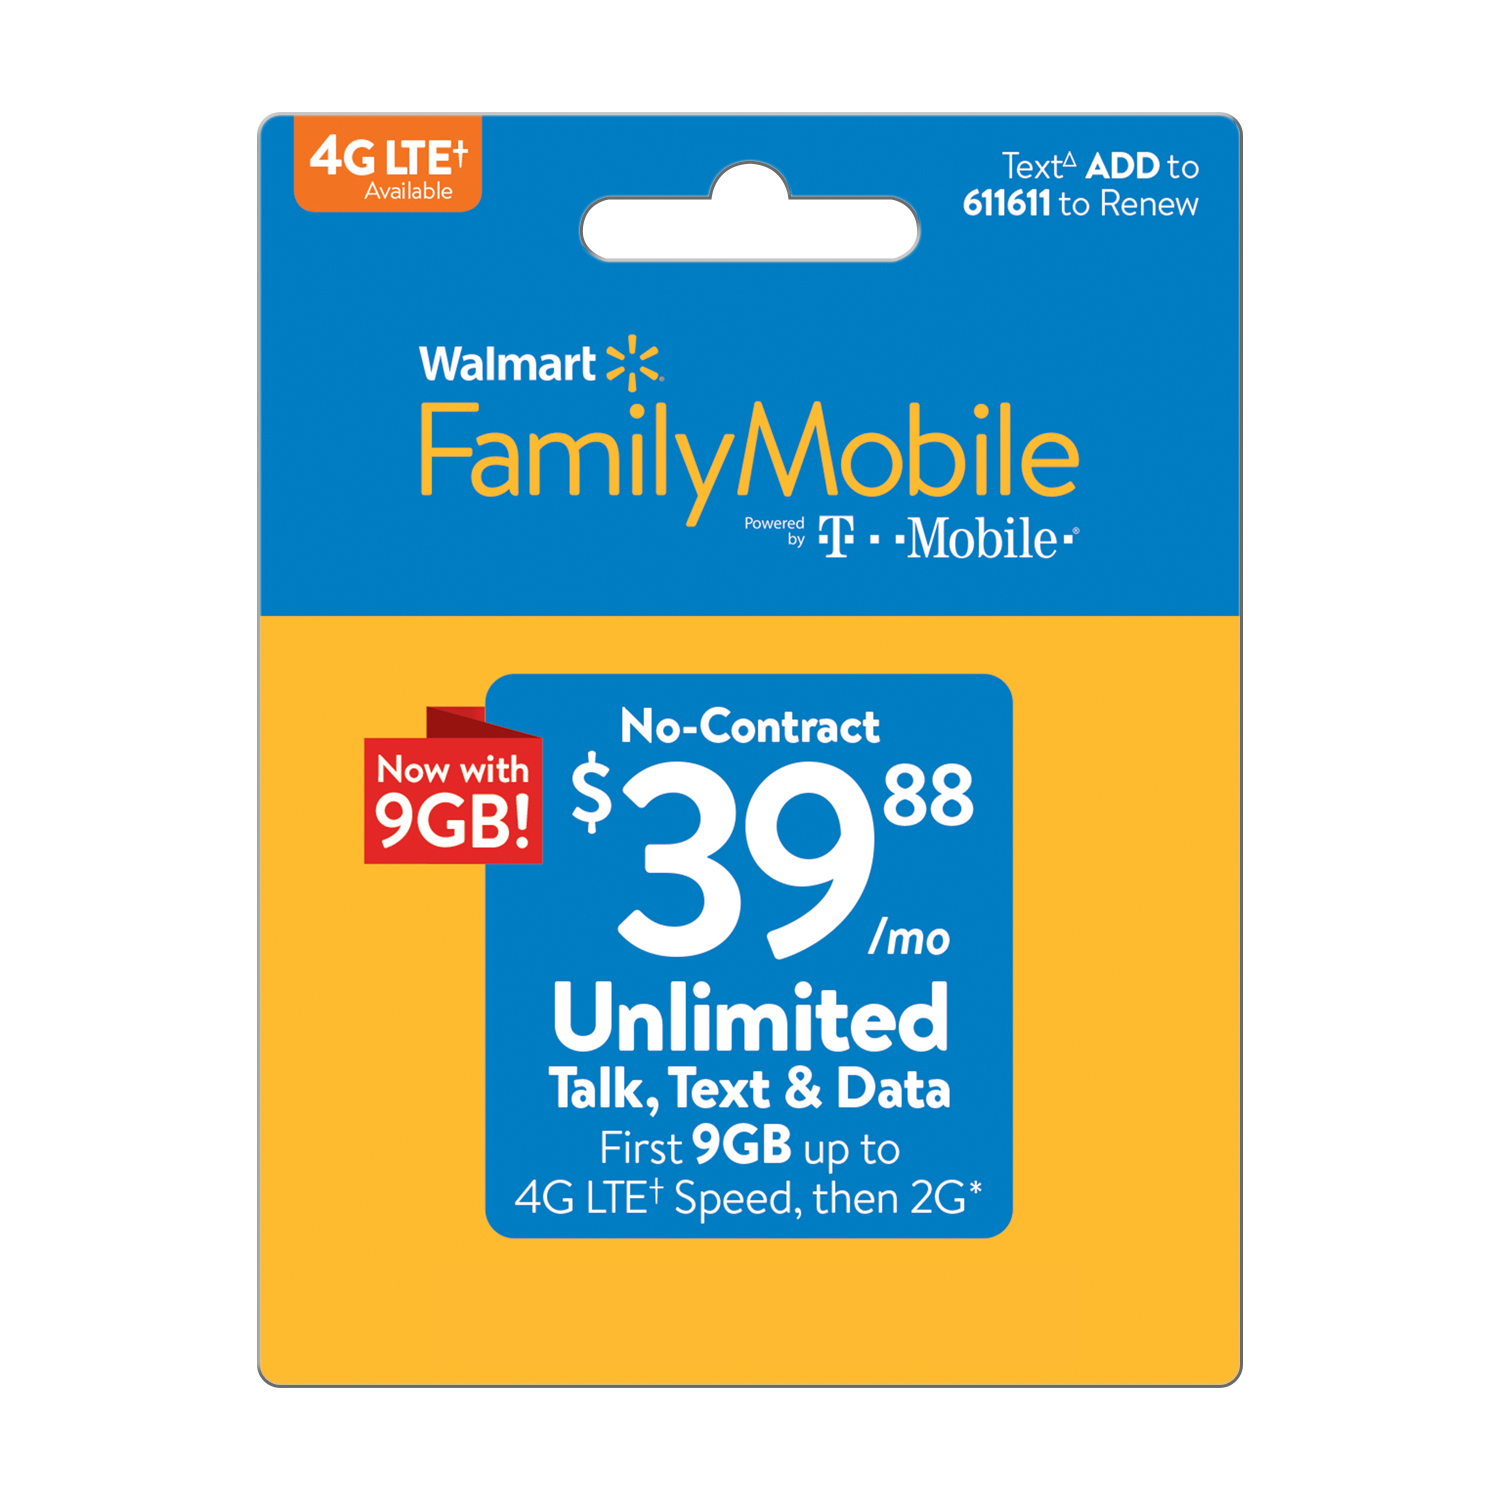 Walmart Family Mobile $39.88 Unlimited Monthly Plan (with up to 9GB of data at high speeds, then 2G*) (Email Delivery)